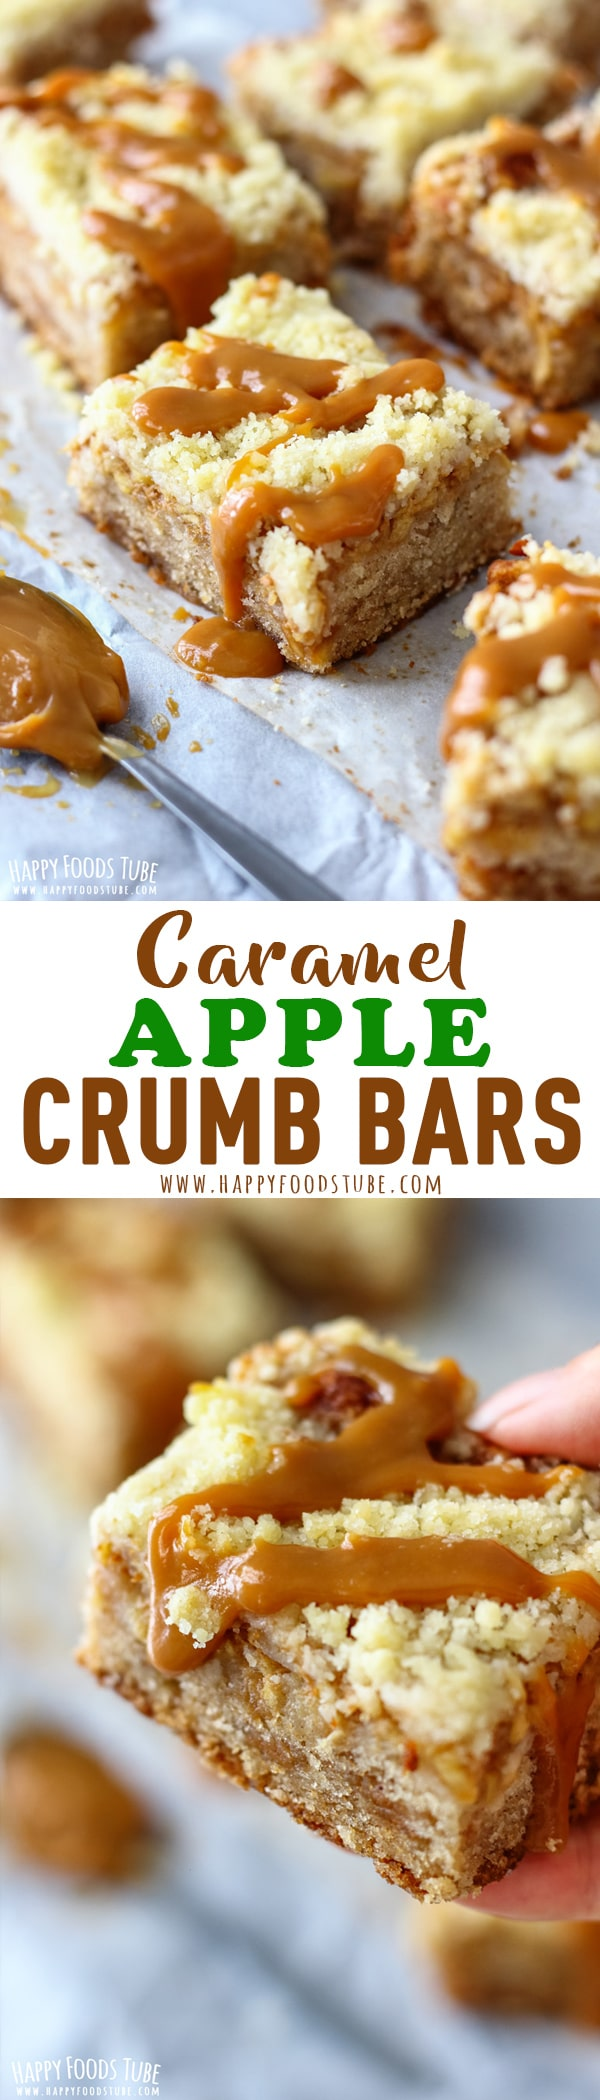 Sweeten up your day with these caramel apple crumb bars! Moist crust, topped with Dulce de Leche, apples and streusel topping. Perfect fall dessert. Caramel apple crumb bars with streusel topping. #baking #caramel #crumbbars #streuseltopping #dulcedeleche #desserts